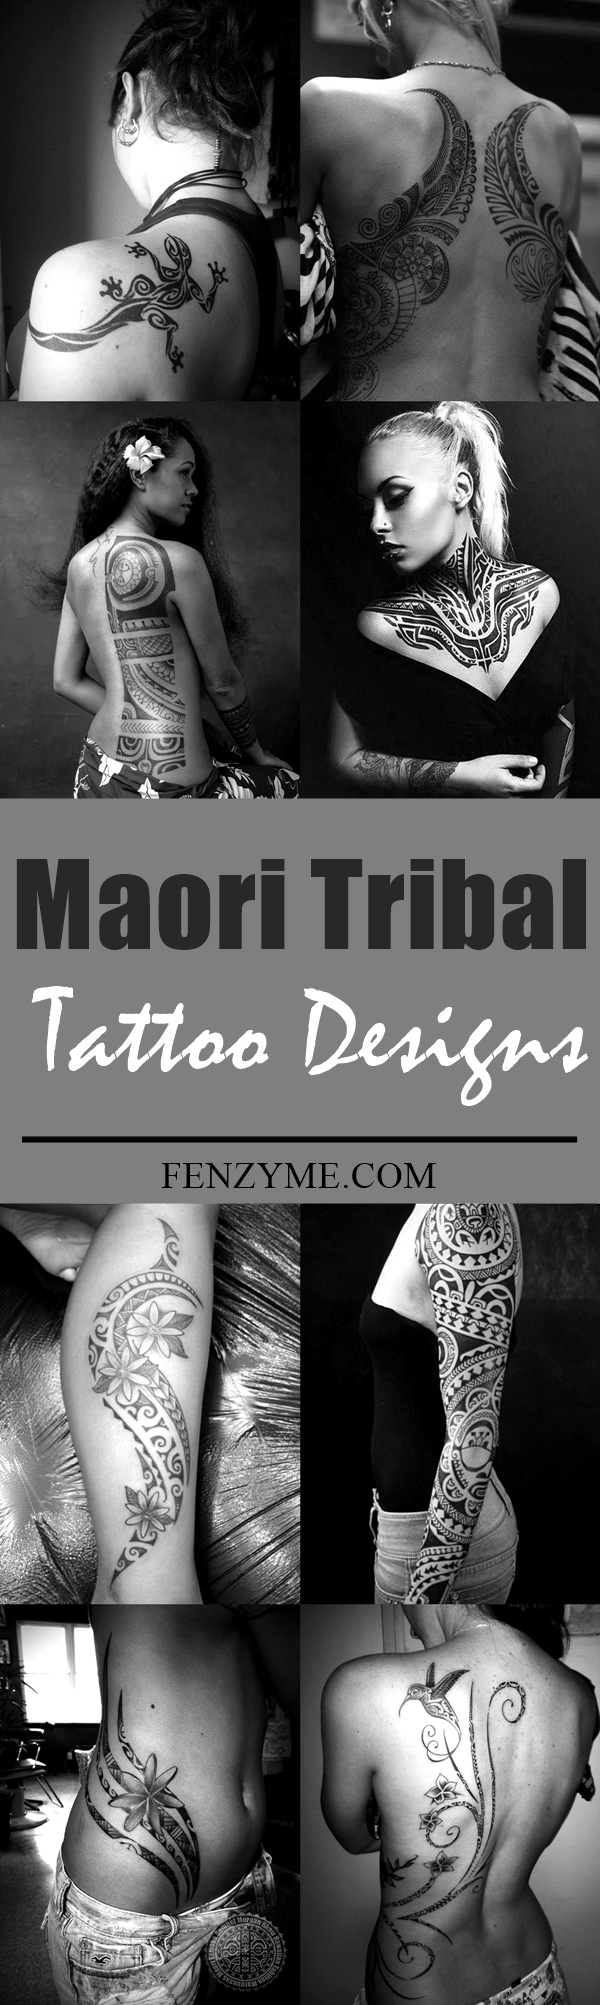 maori-tribal-tattoo-designs